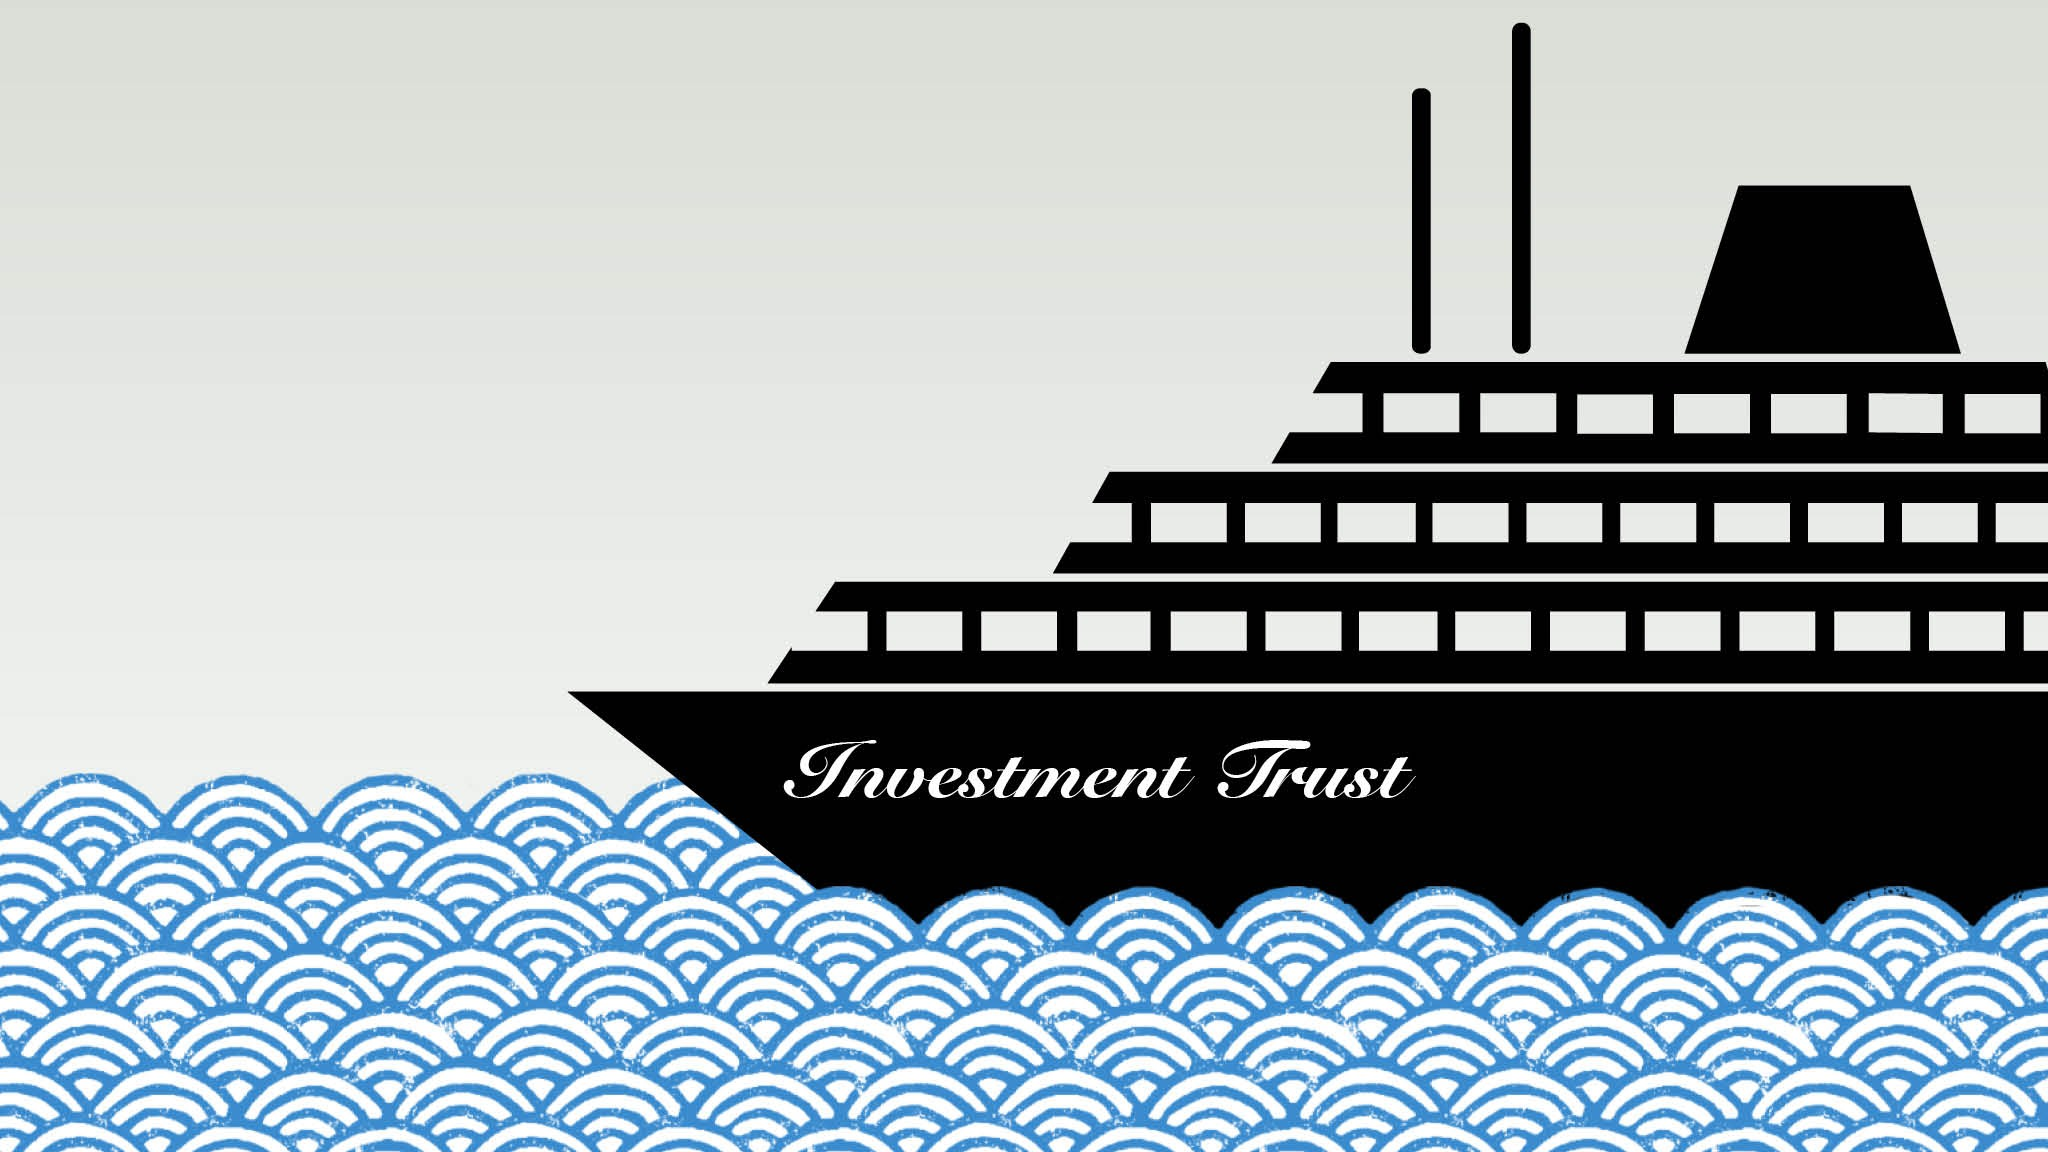 Investment trusts with large discounts on car deepak tulsiani investment